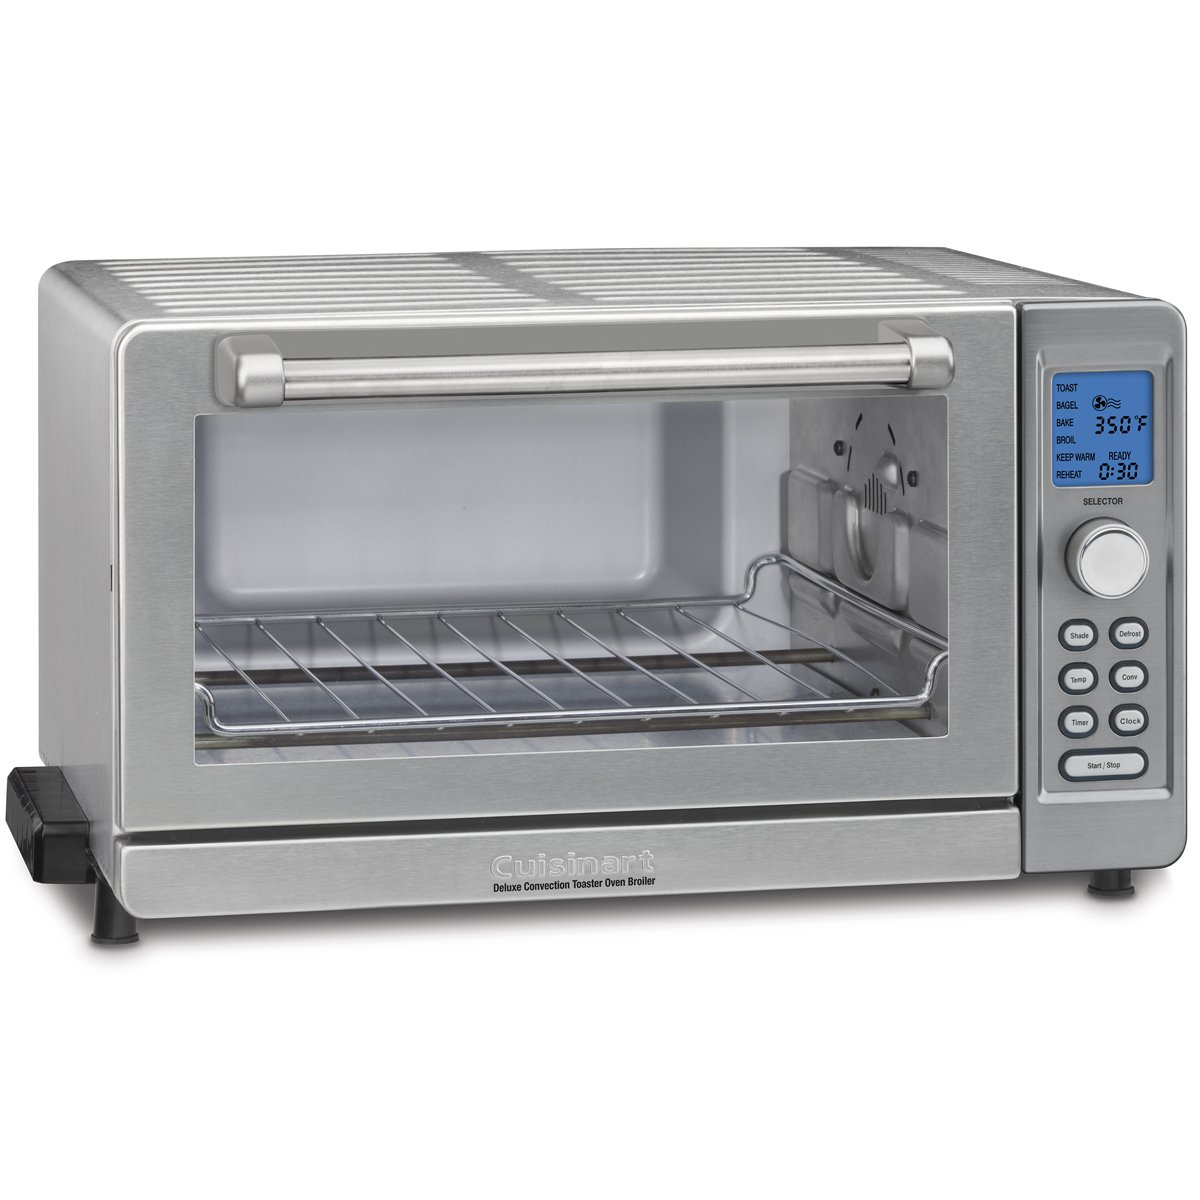 digital ovens appliances oven broiler the australia target costco and has sale on ranges toaster convection